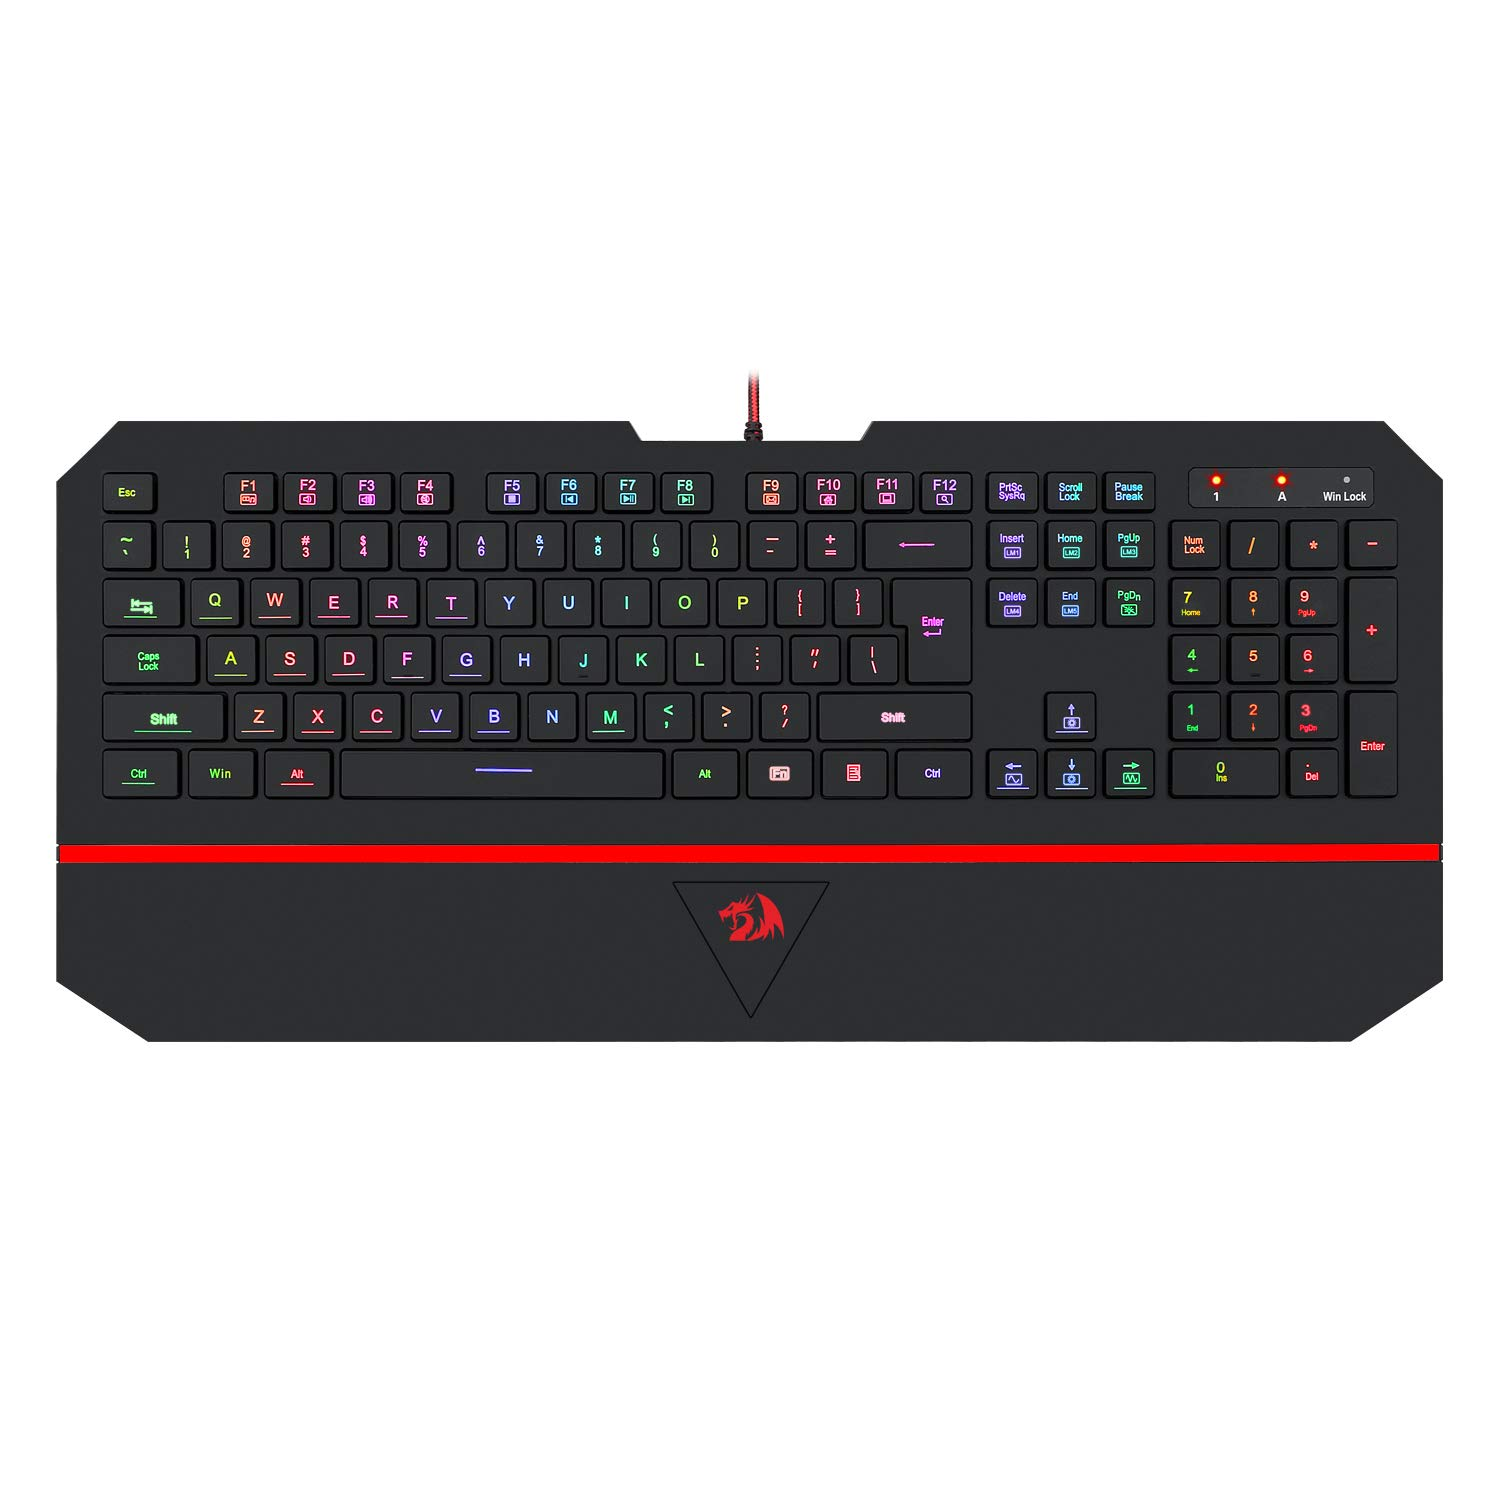 Redragon K502 RGB Gaming Keyboard RGB LED Backlit Illuminated 104 Key Silent Keyboard with Wrist Rest for Windows PC Games